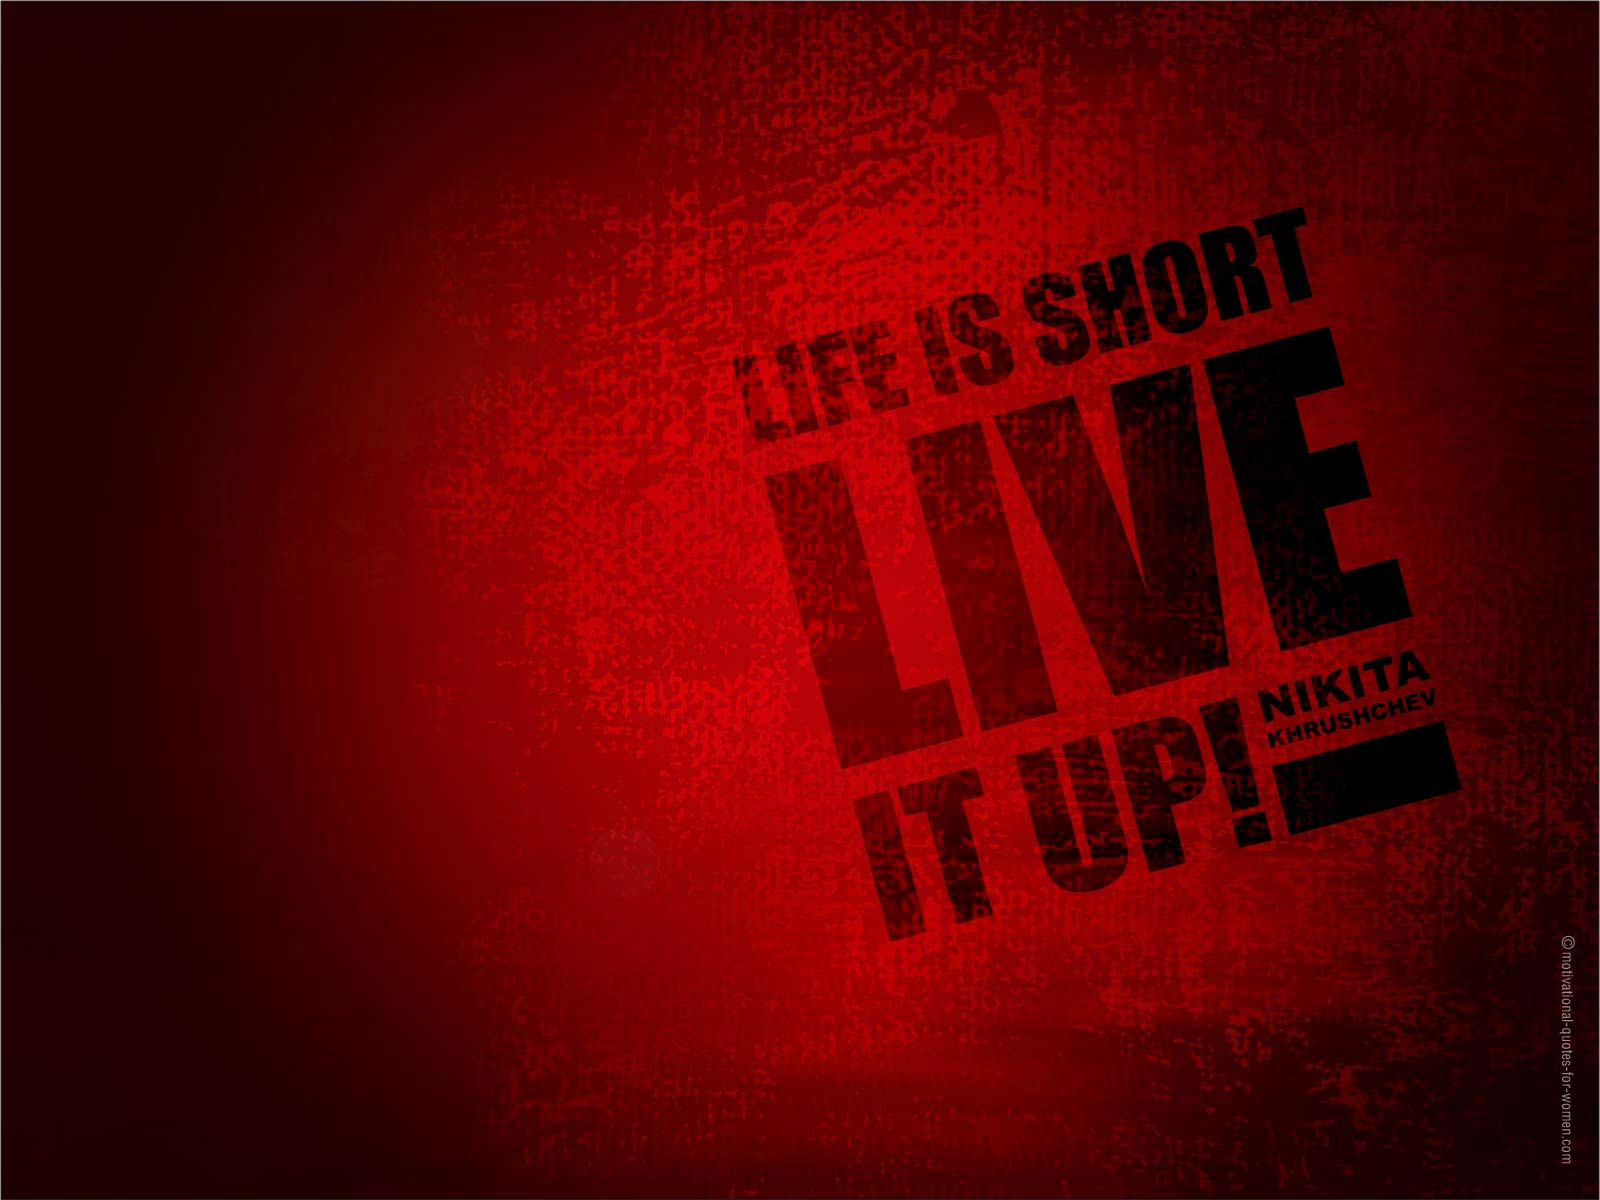 Life Is Short Live It Up!